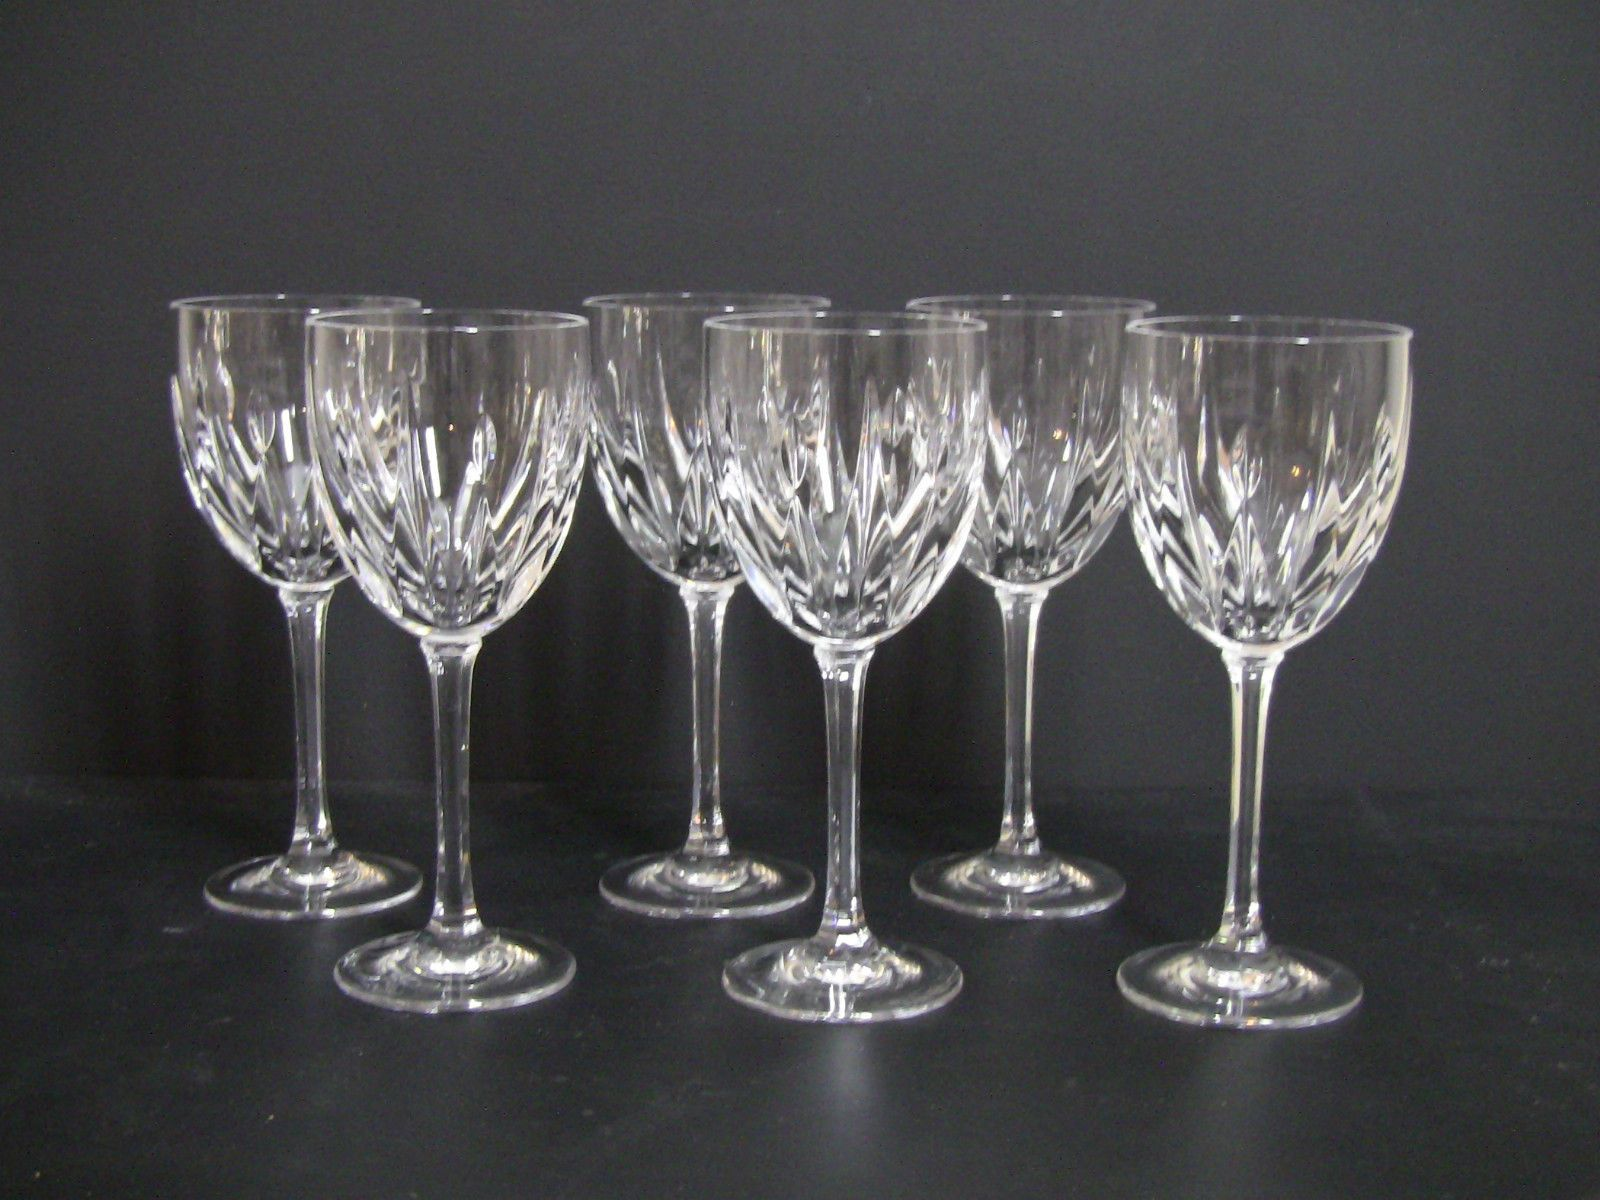 Crystal Stemware Wine Glasses Gorham Bellevue Water Goblet 166907 Crystal Wine Glasses